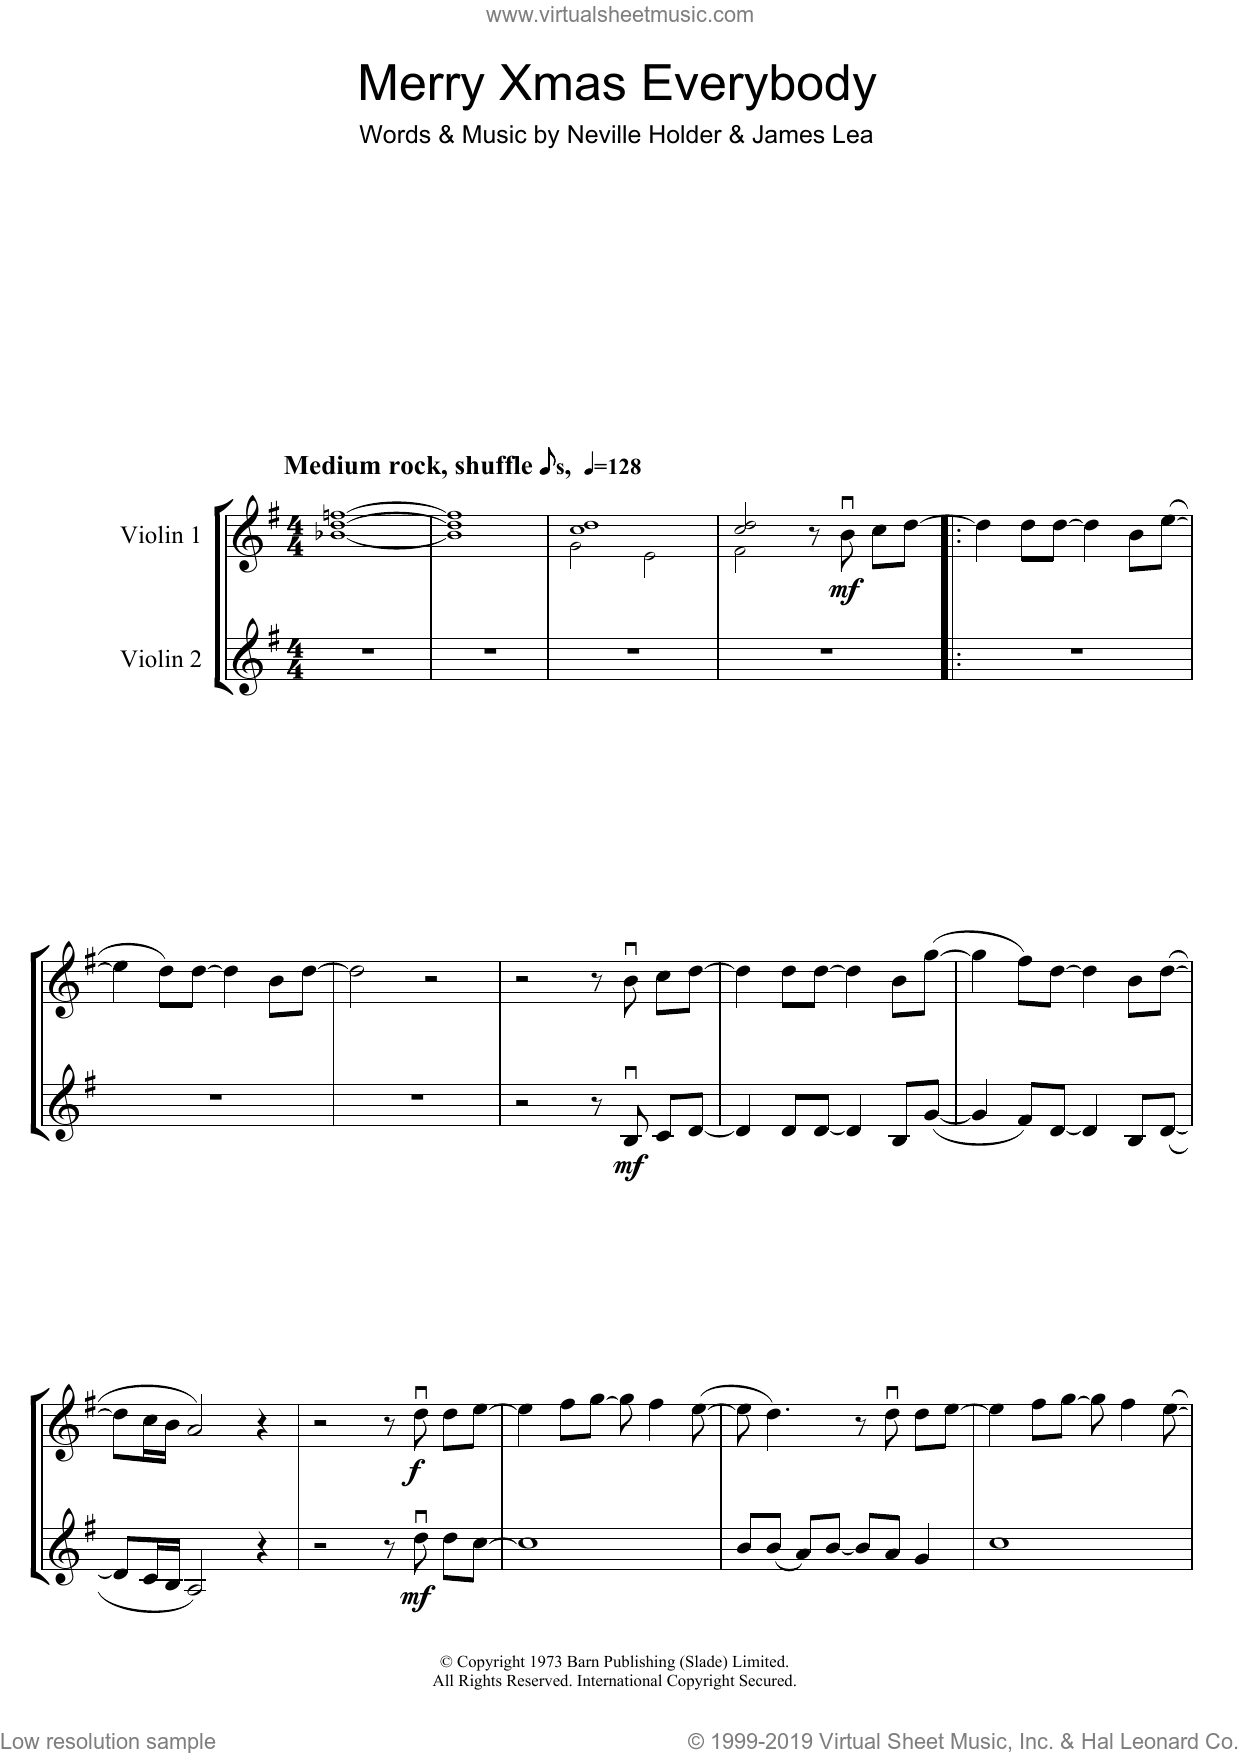 Merry Xmas Everybody sheet music for two violins (duets, violin duets) by Mud, S Club 7, Slade, James Lea and Neville Holder, intermediate skill level